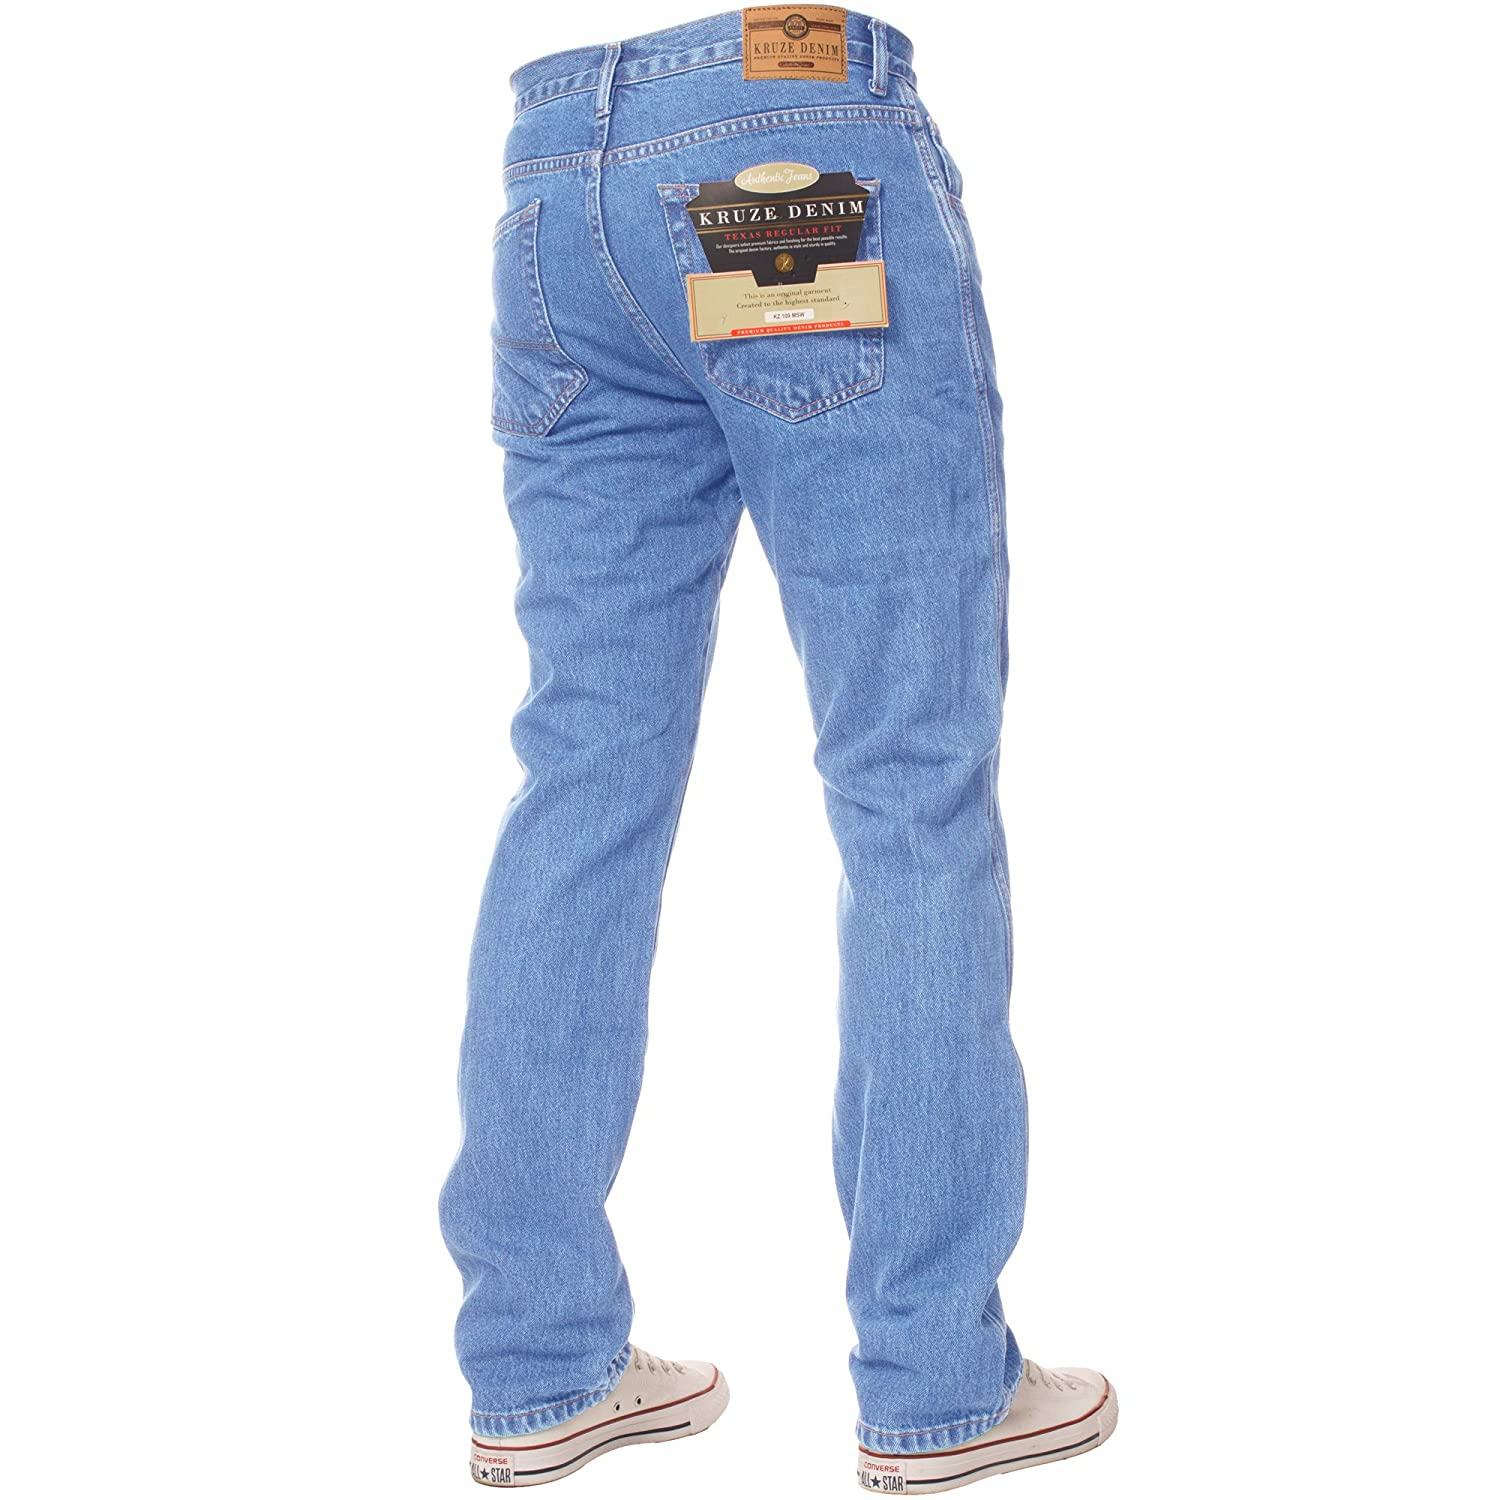 New Kruze Denim Mens Work Jeans Basic Heavy duty Straight Leg Regular Fit Pants